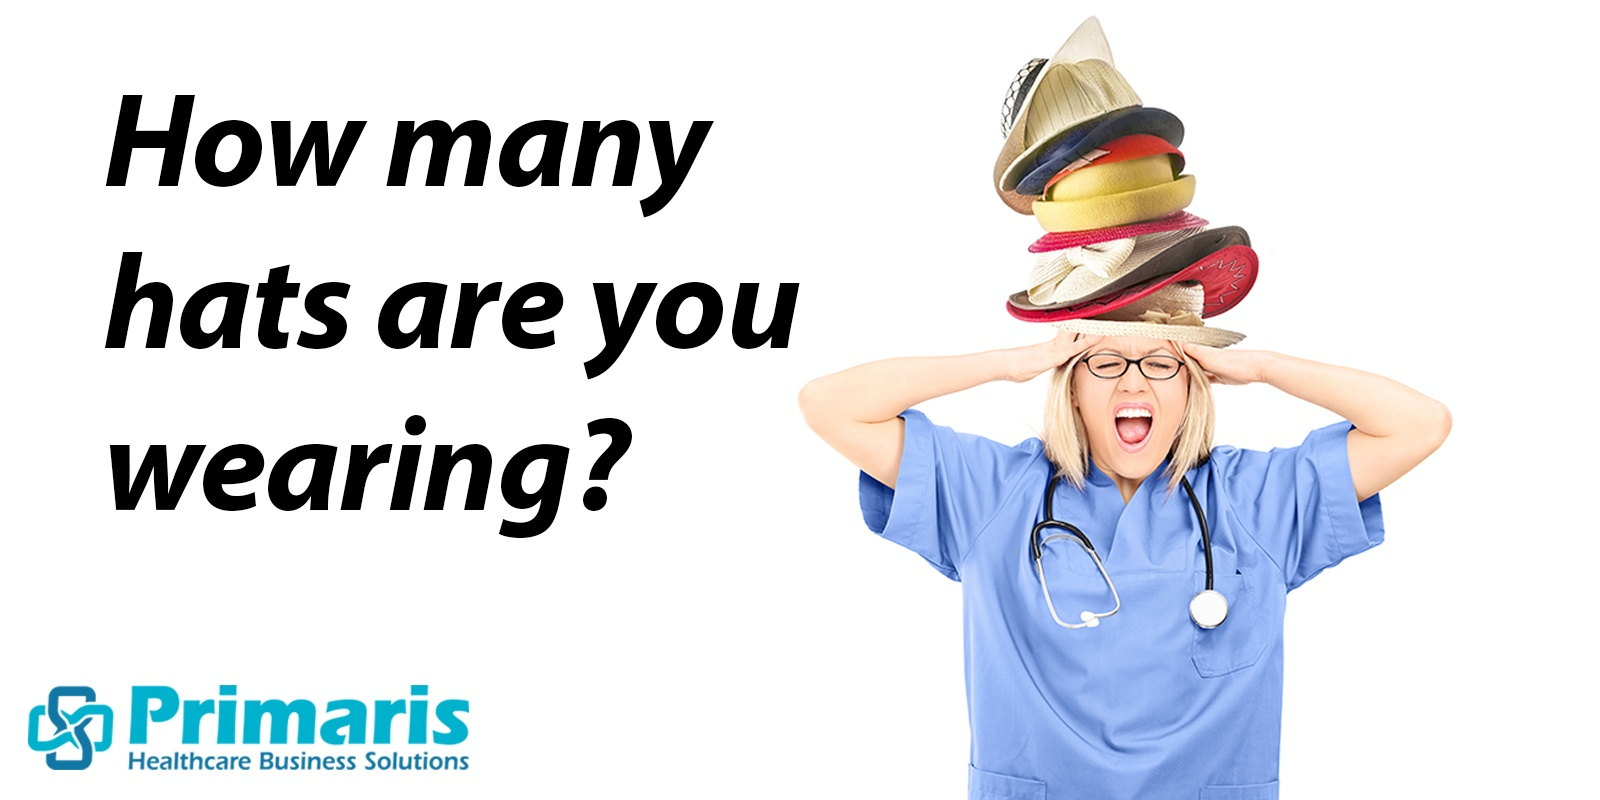 How many hats are you wearing? The image is of a nurse with several hats stacked on her head, and she appears overwhelmed | registry abstraction | Priamris